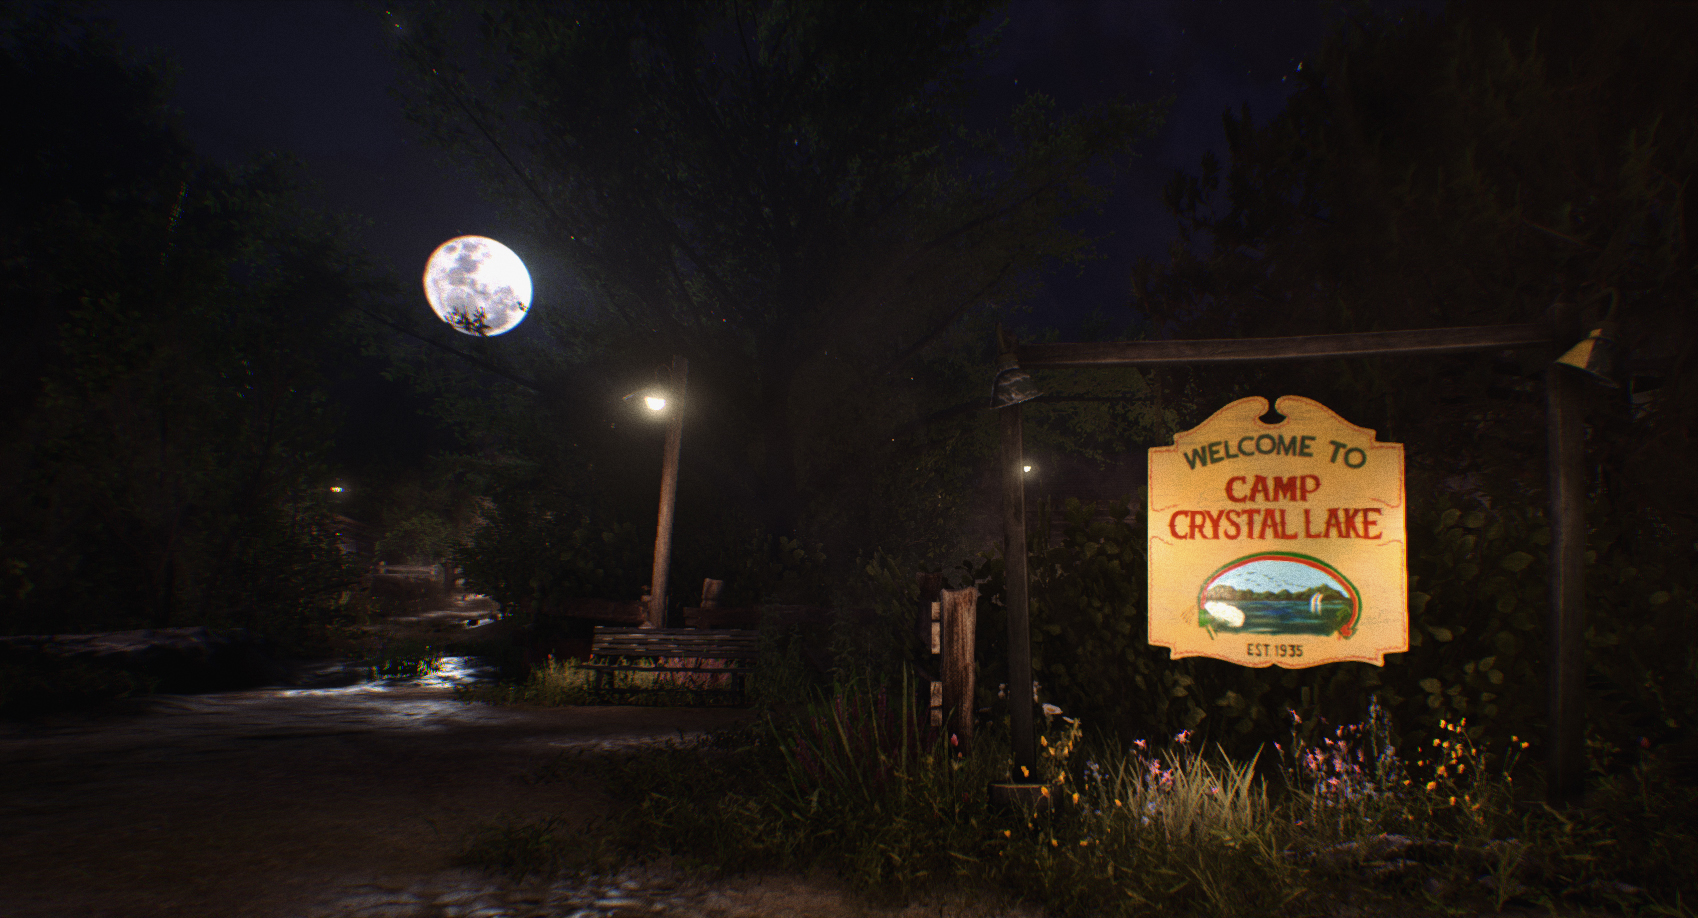 Friday the 13th: The Game, new game by Gun Media